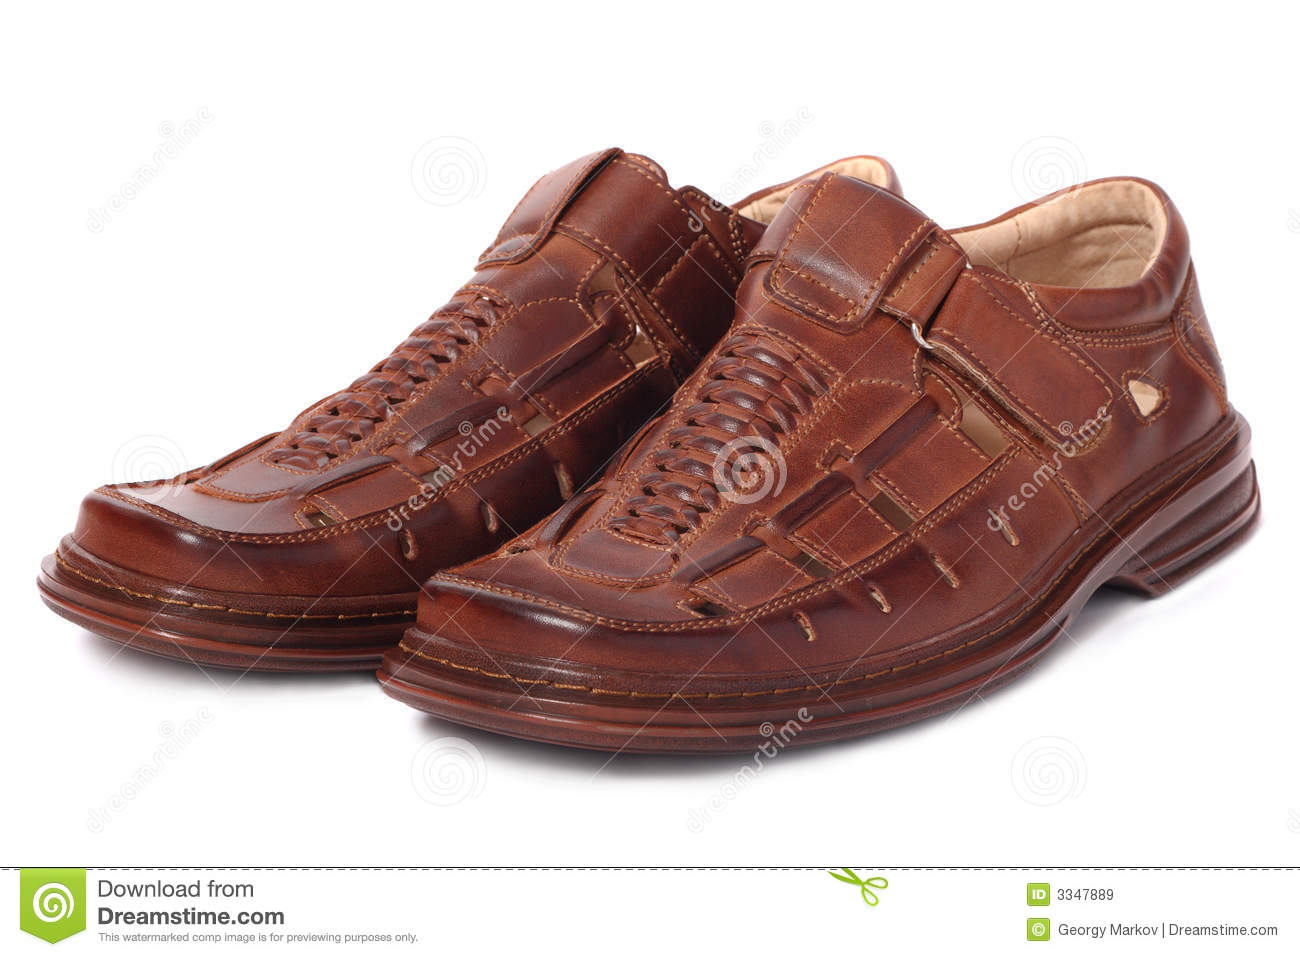 Pair of brown leather shoes, isolated on white background